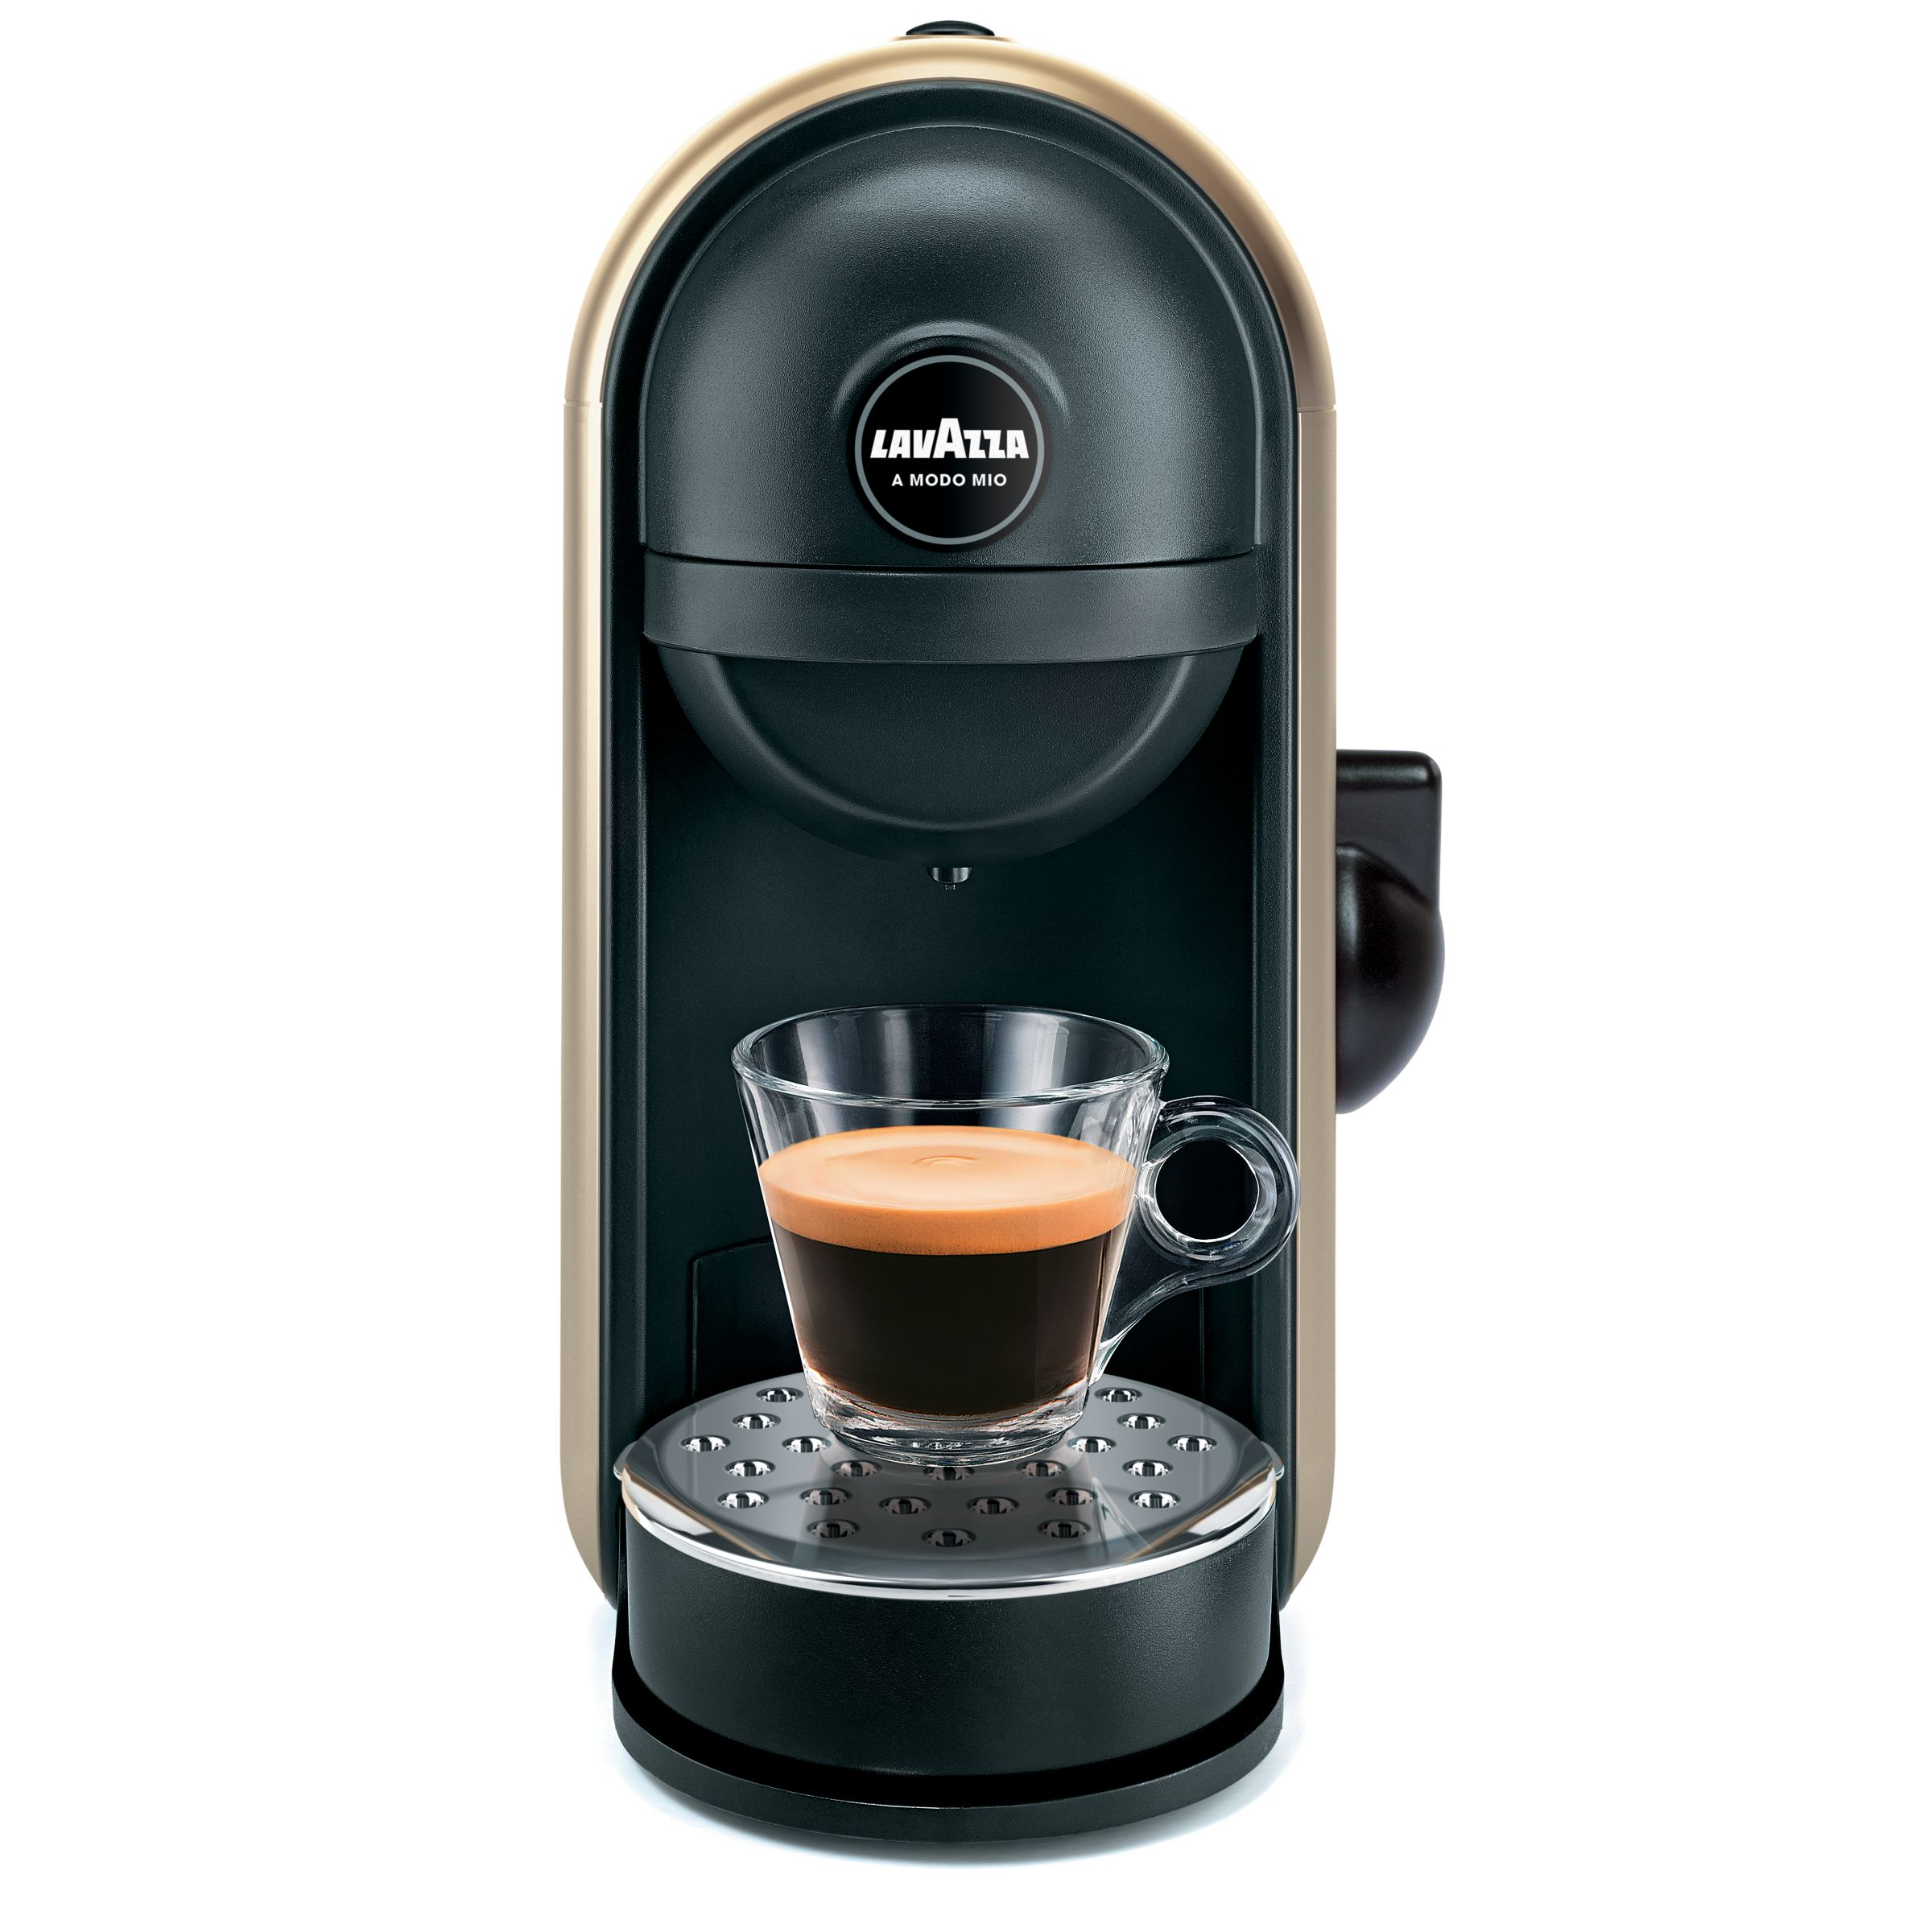 Buy Lavazza A Modo Mio Min? Coffee Maker John Lewis